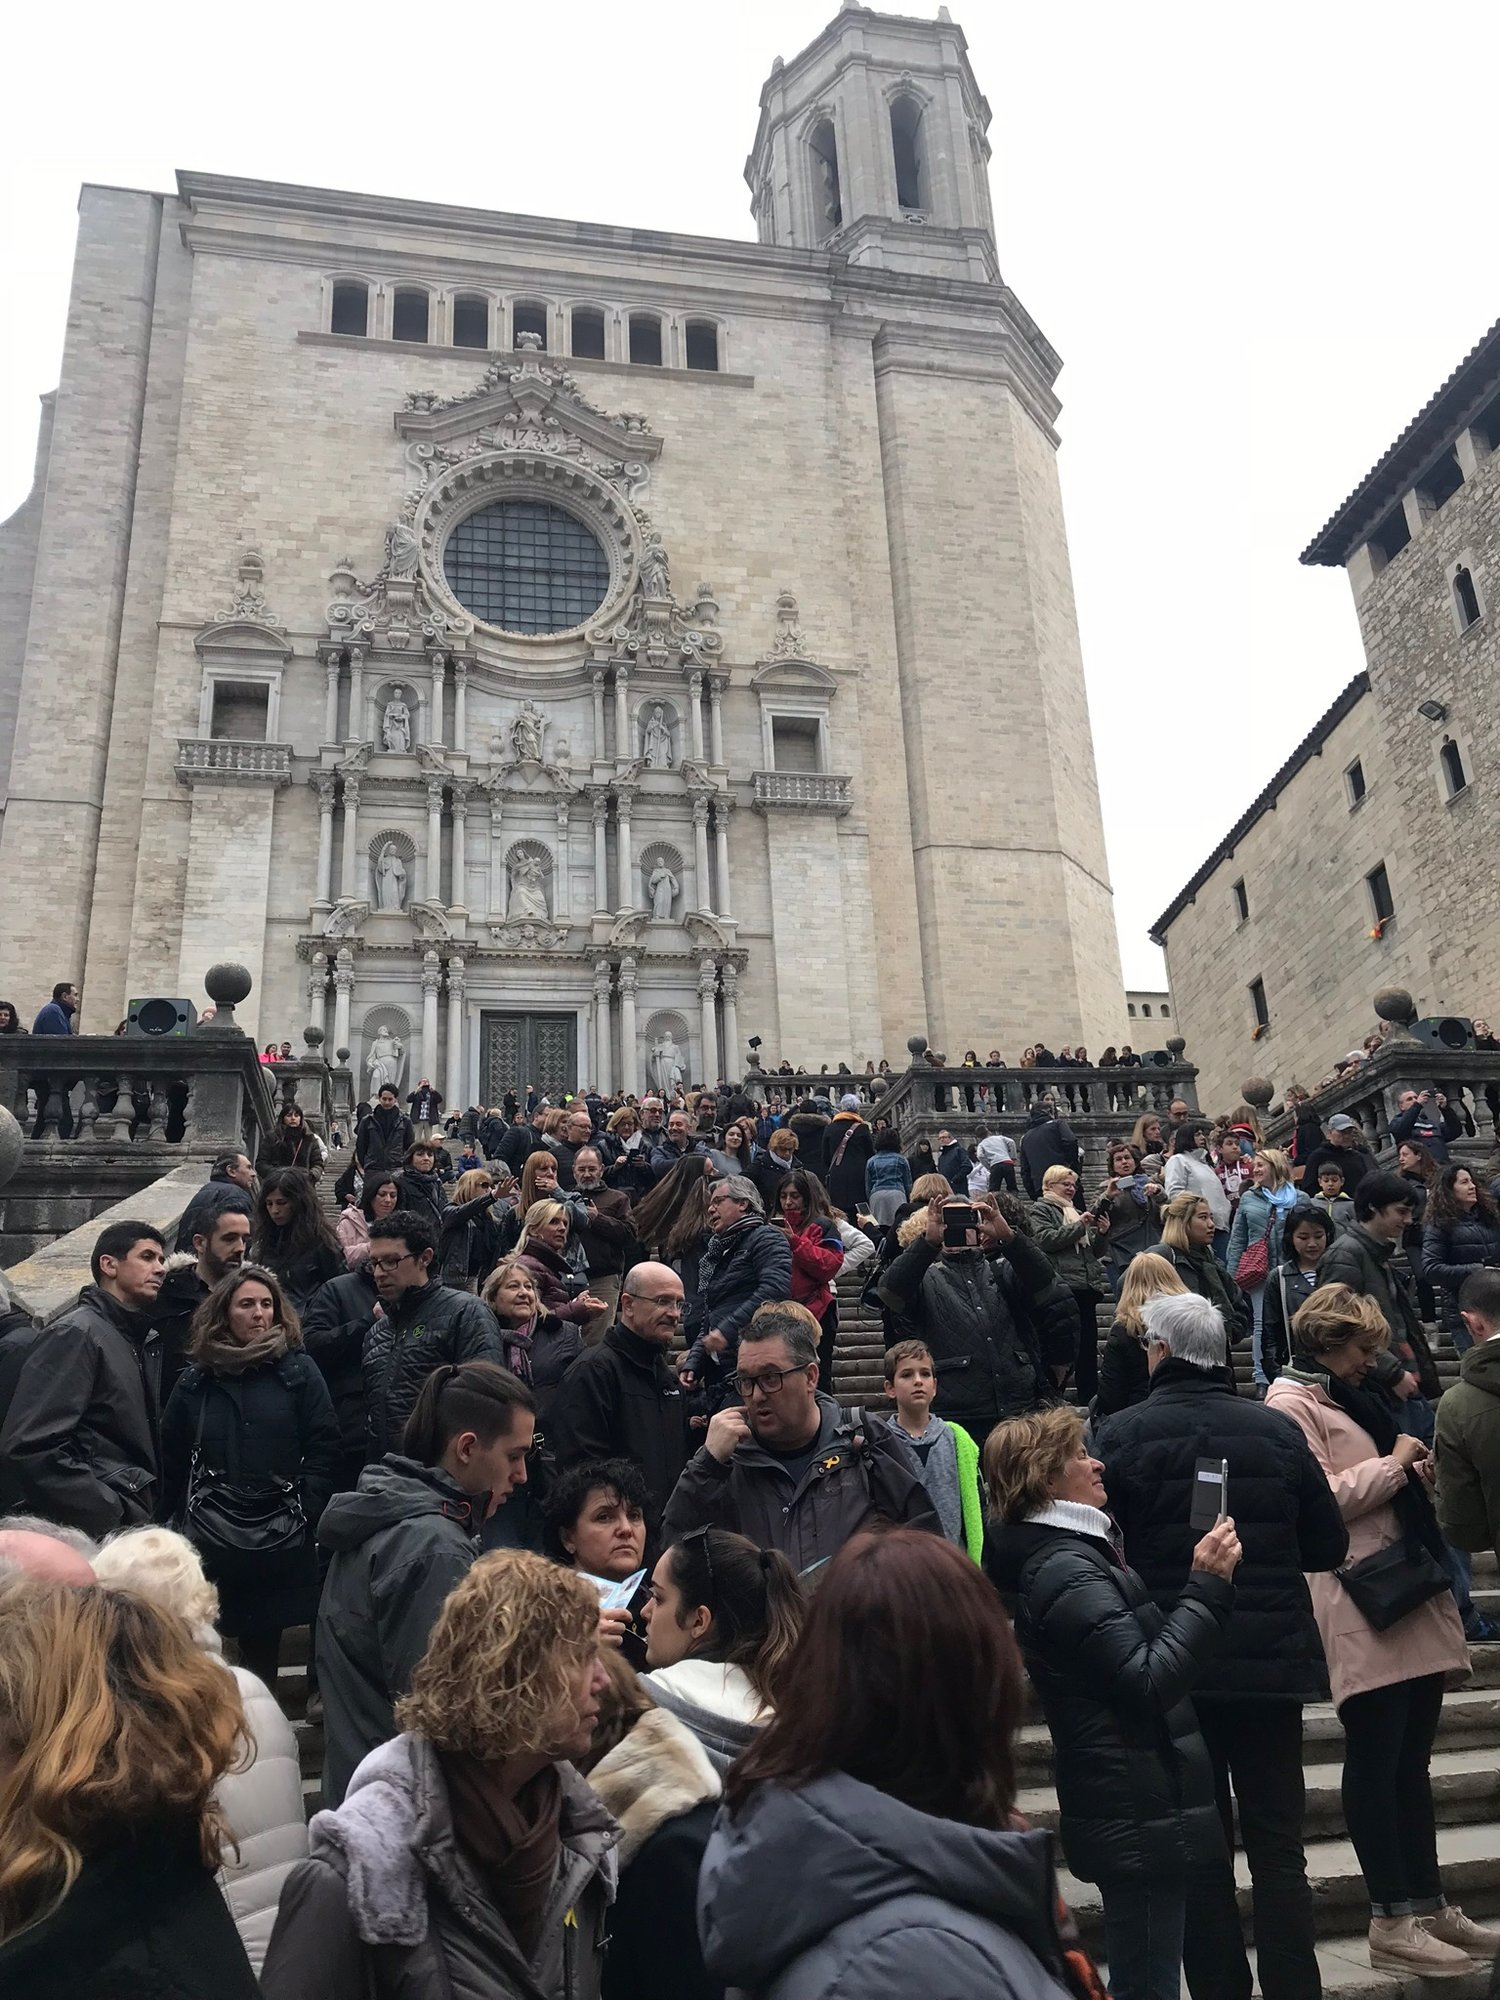 People waiting for the Catholic processional to start outside of Girona's Cathedral